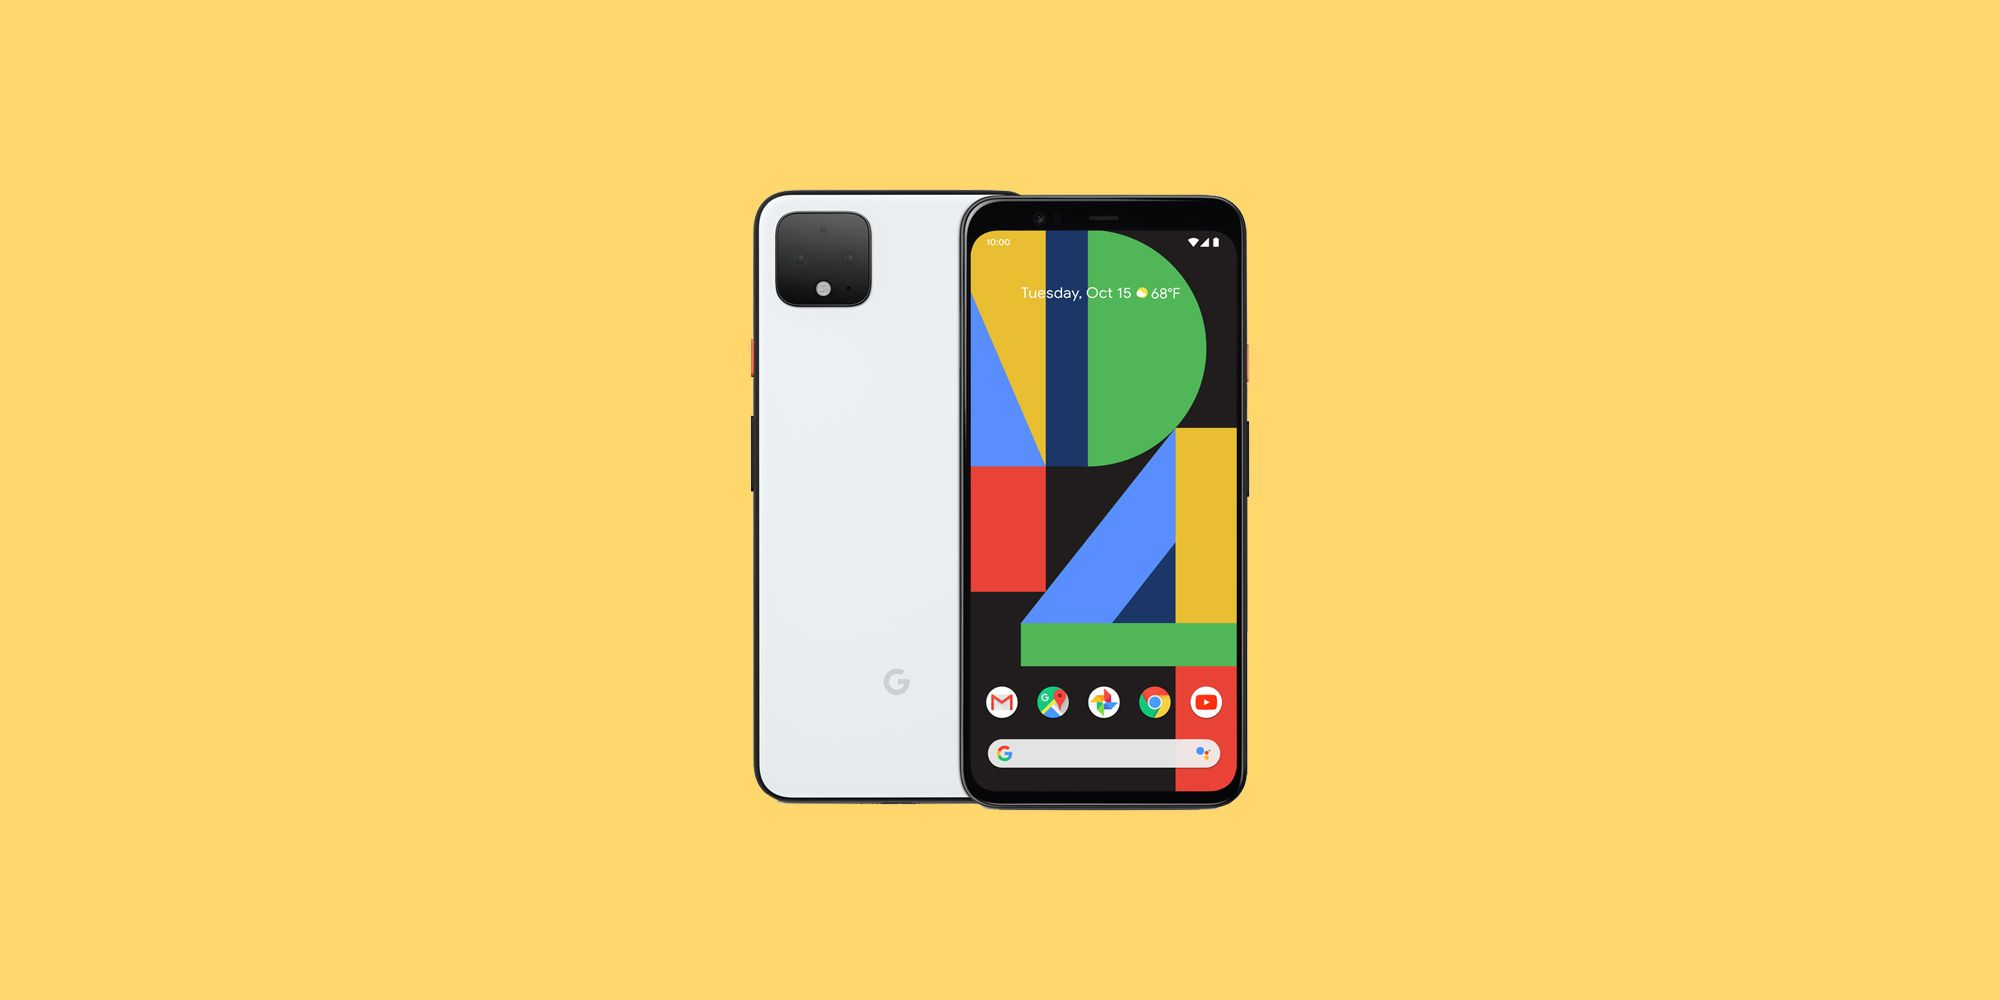 Google Pixel 4a Release Date, Specs, Features Leaks shows Improved Battery Life and Headphones Jack